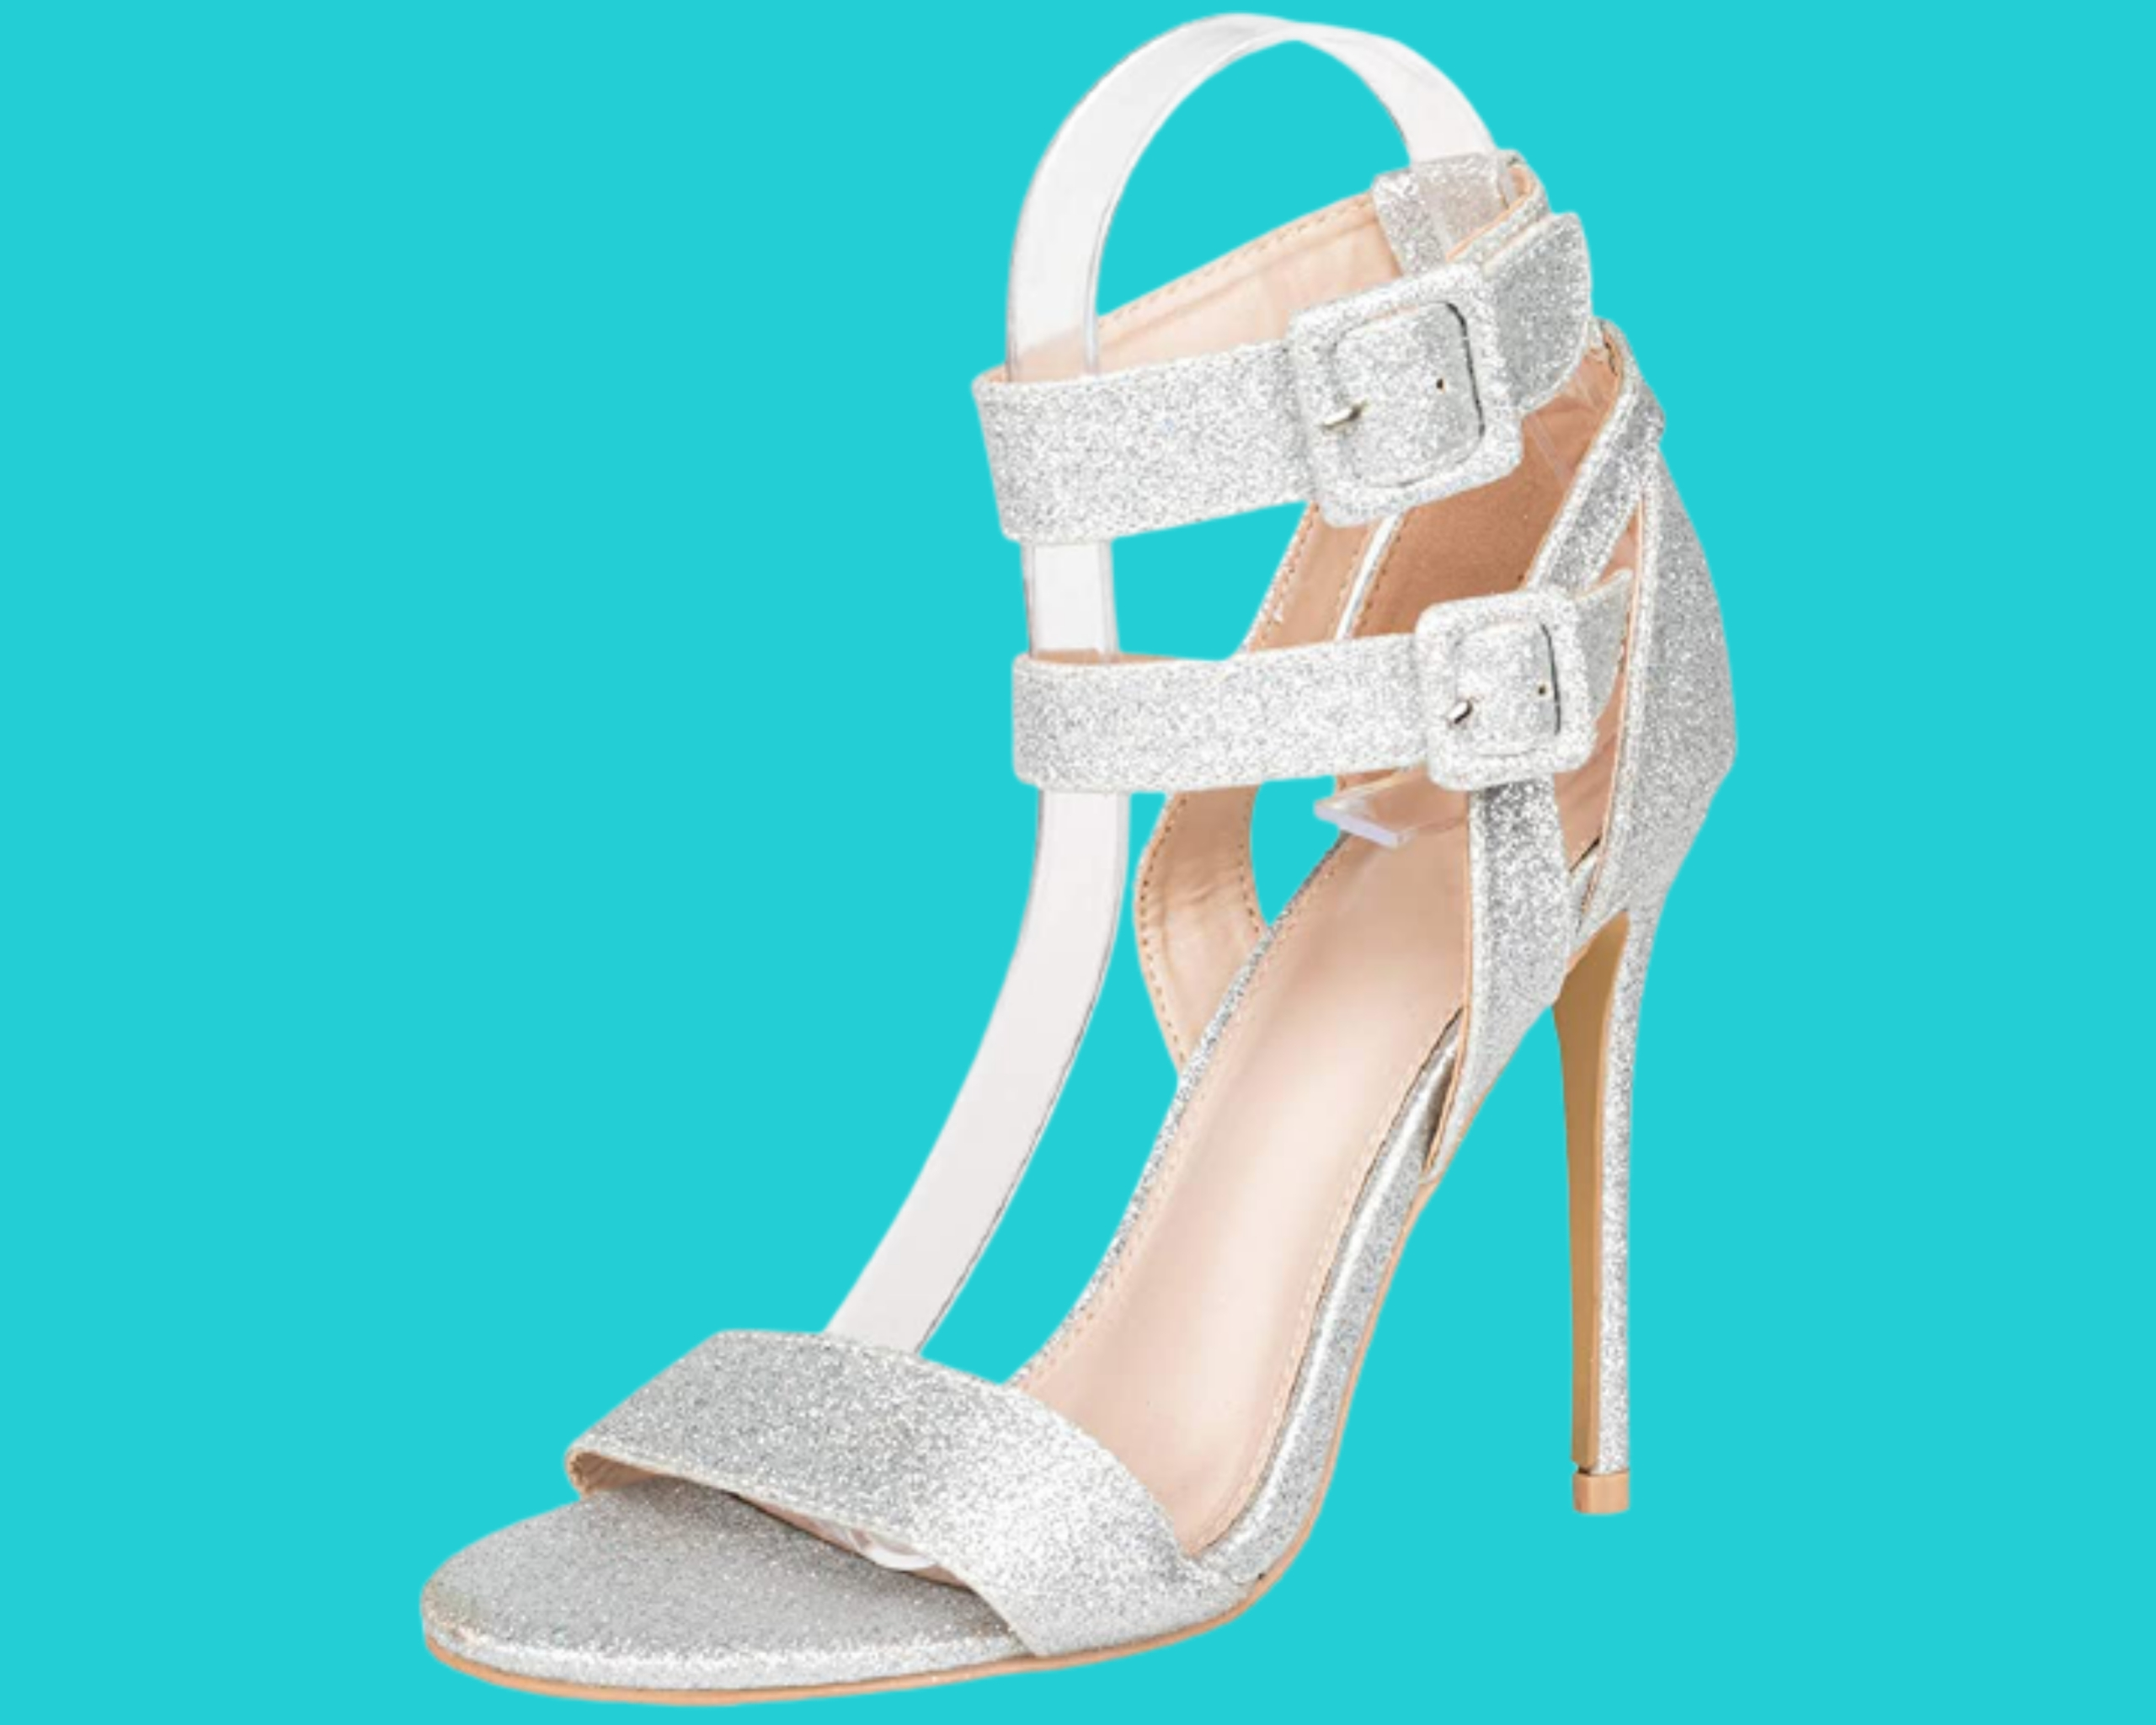 Best party shoes for ladies